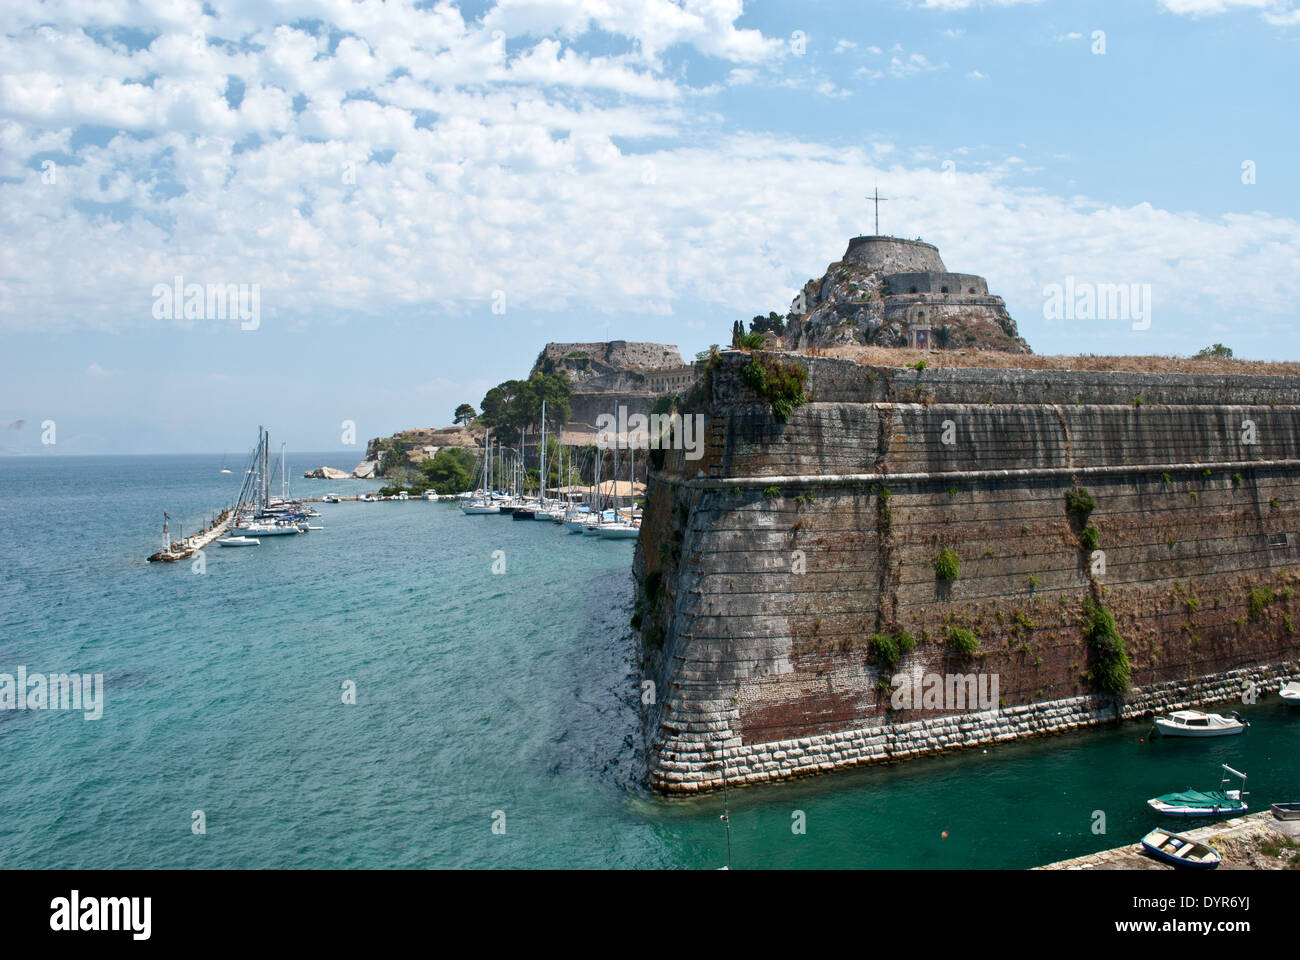 View of the old Venetian fortress in Corfu Stock Photo